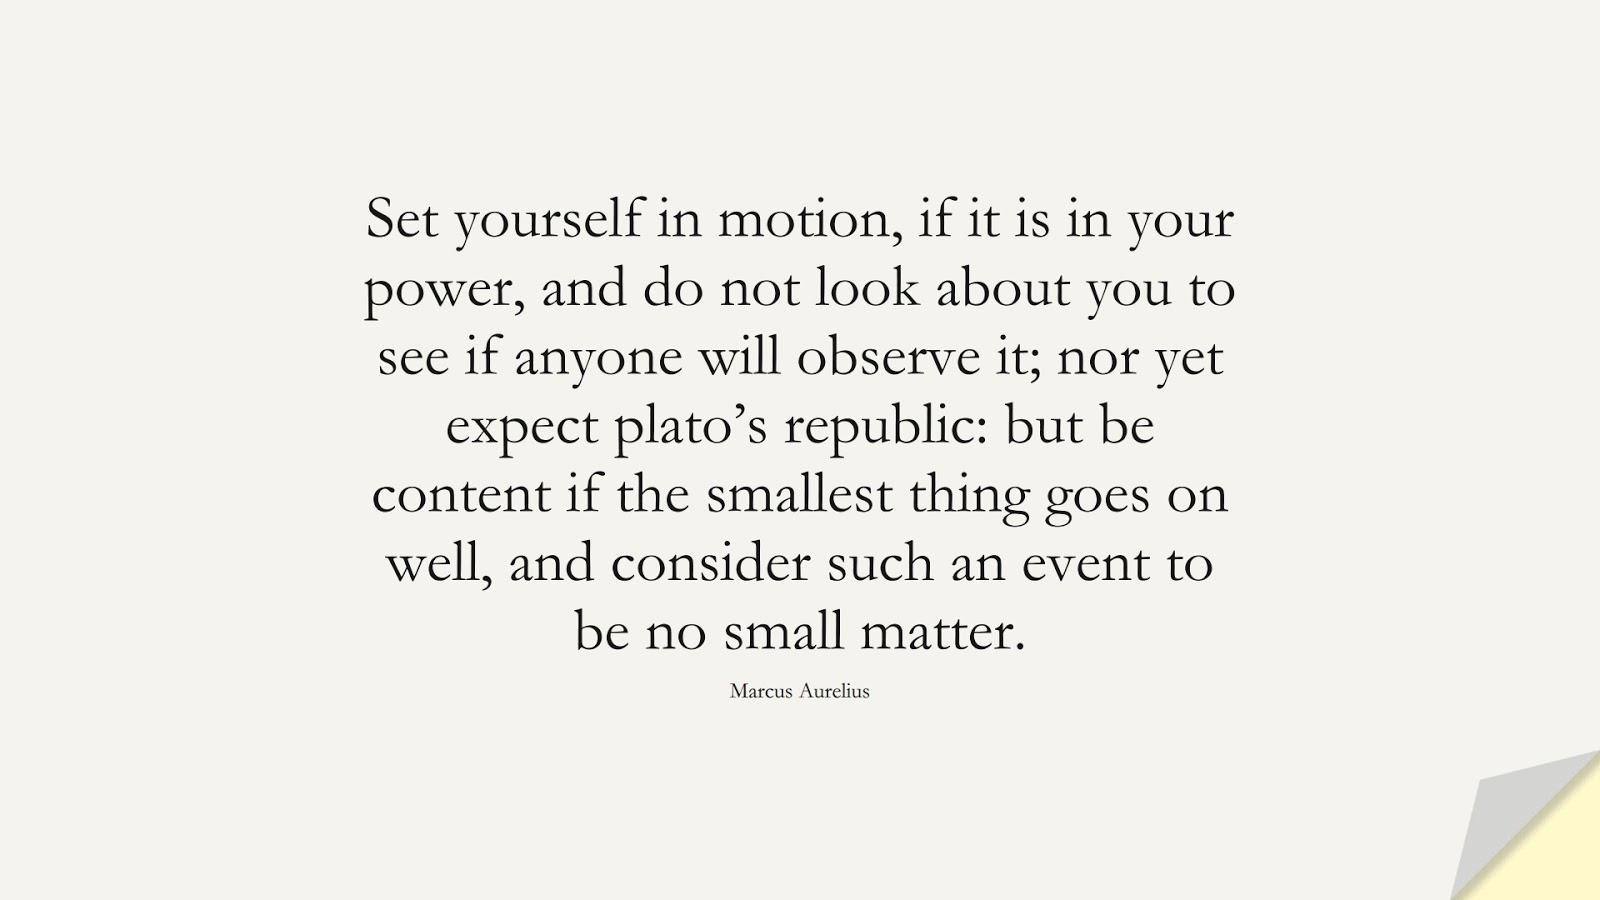 Set yourself in motion, if it is in your power, and do not look about you to see if anyone will observe it; nor yet expect plato's republic: but be content if the smallest thing goes on well, and consider such an event to be no small matter. (Marcus Aurelius);  #MarcusAureliusQuotes